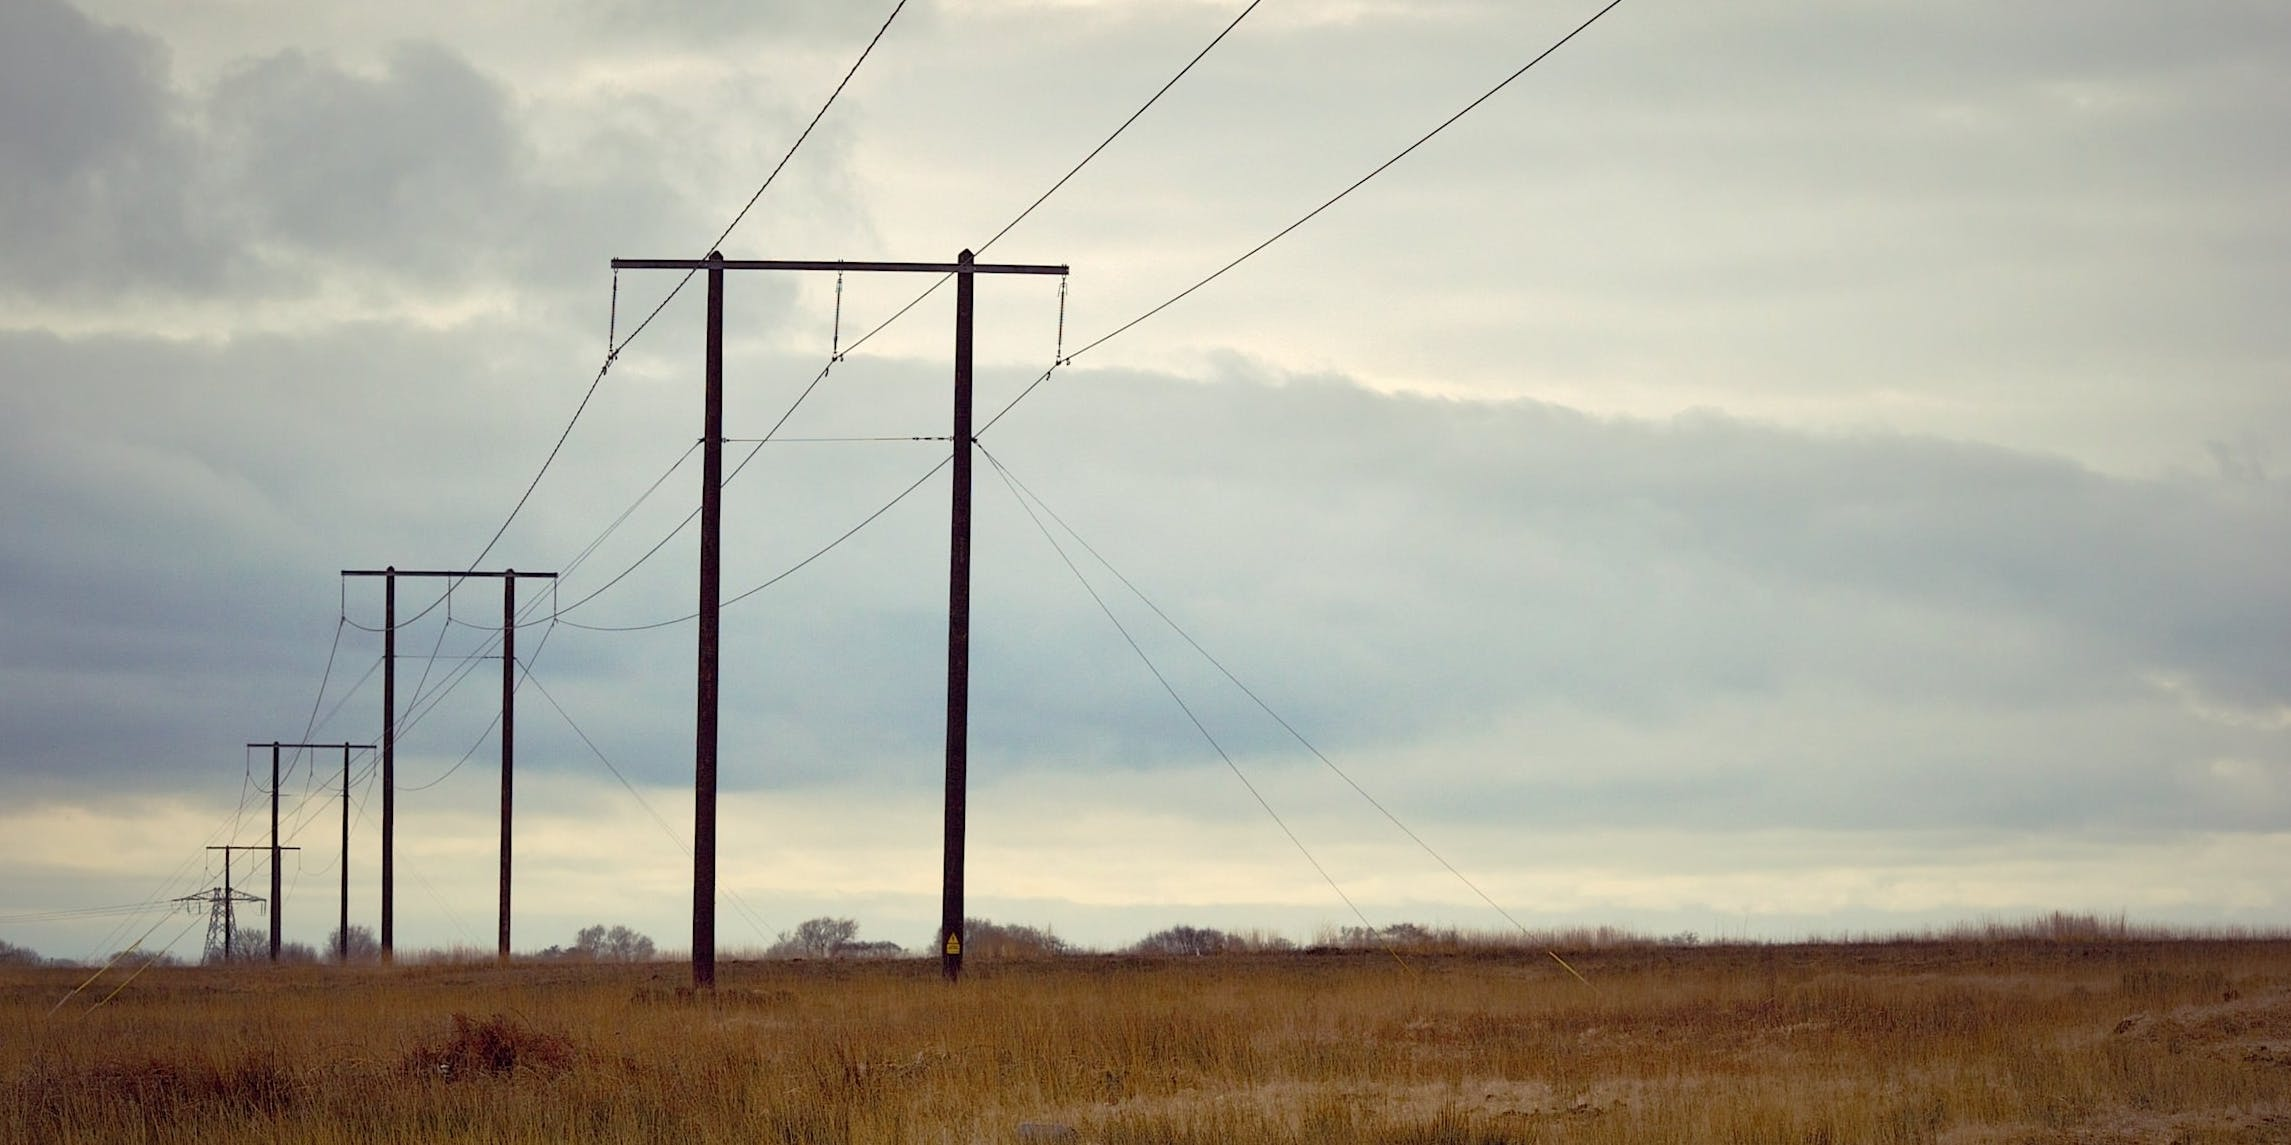 Due to inefficiently updated telephone lines, it's hard to get a broadband internet connection in Rural America.